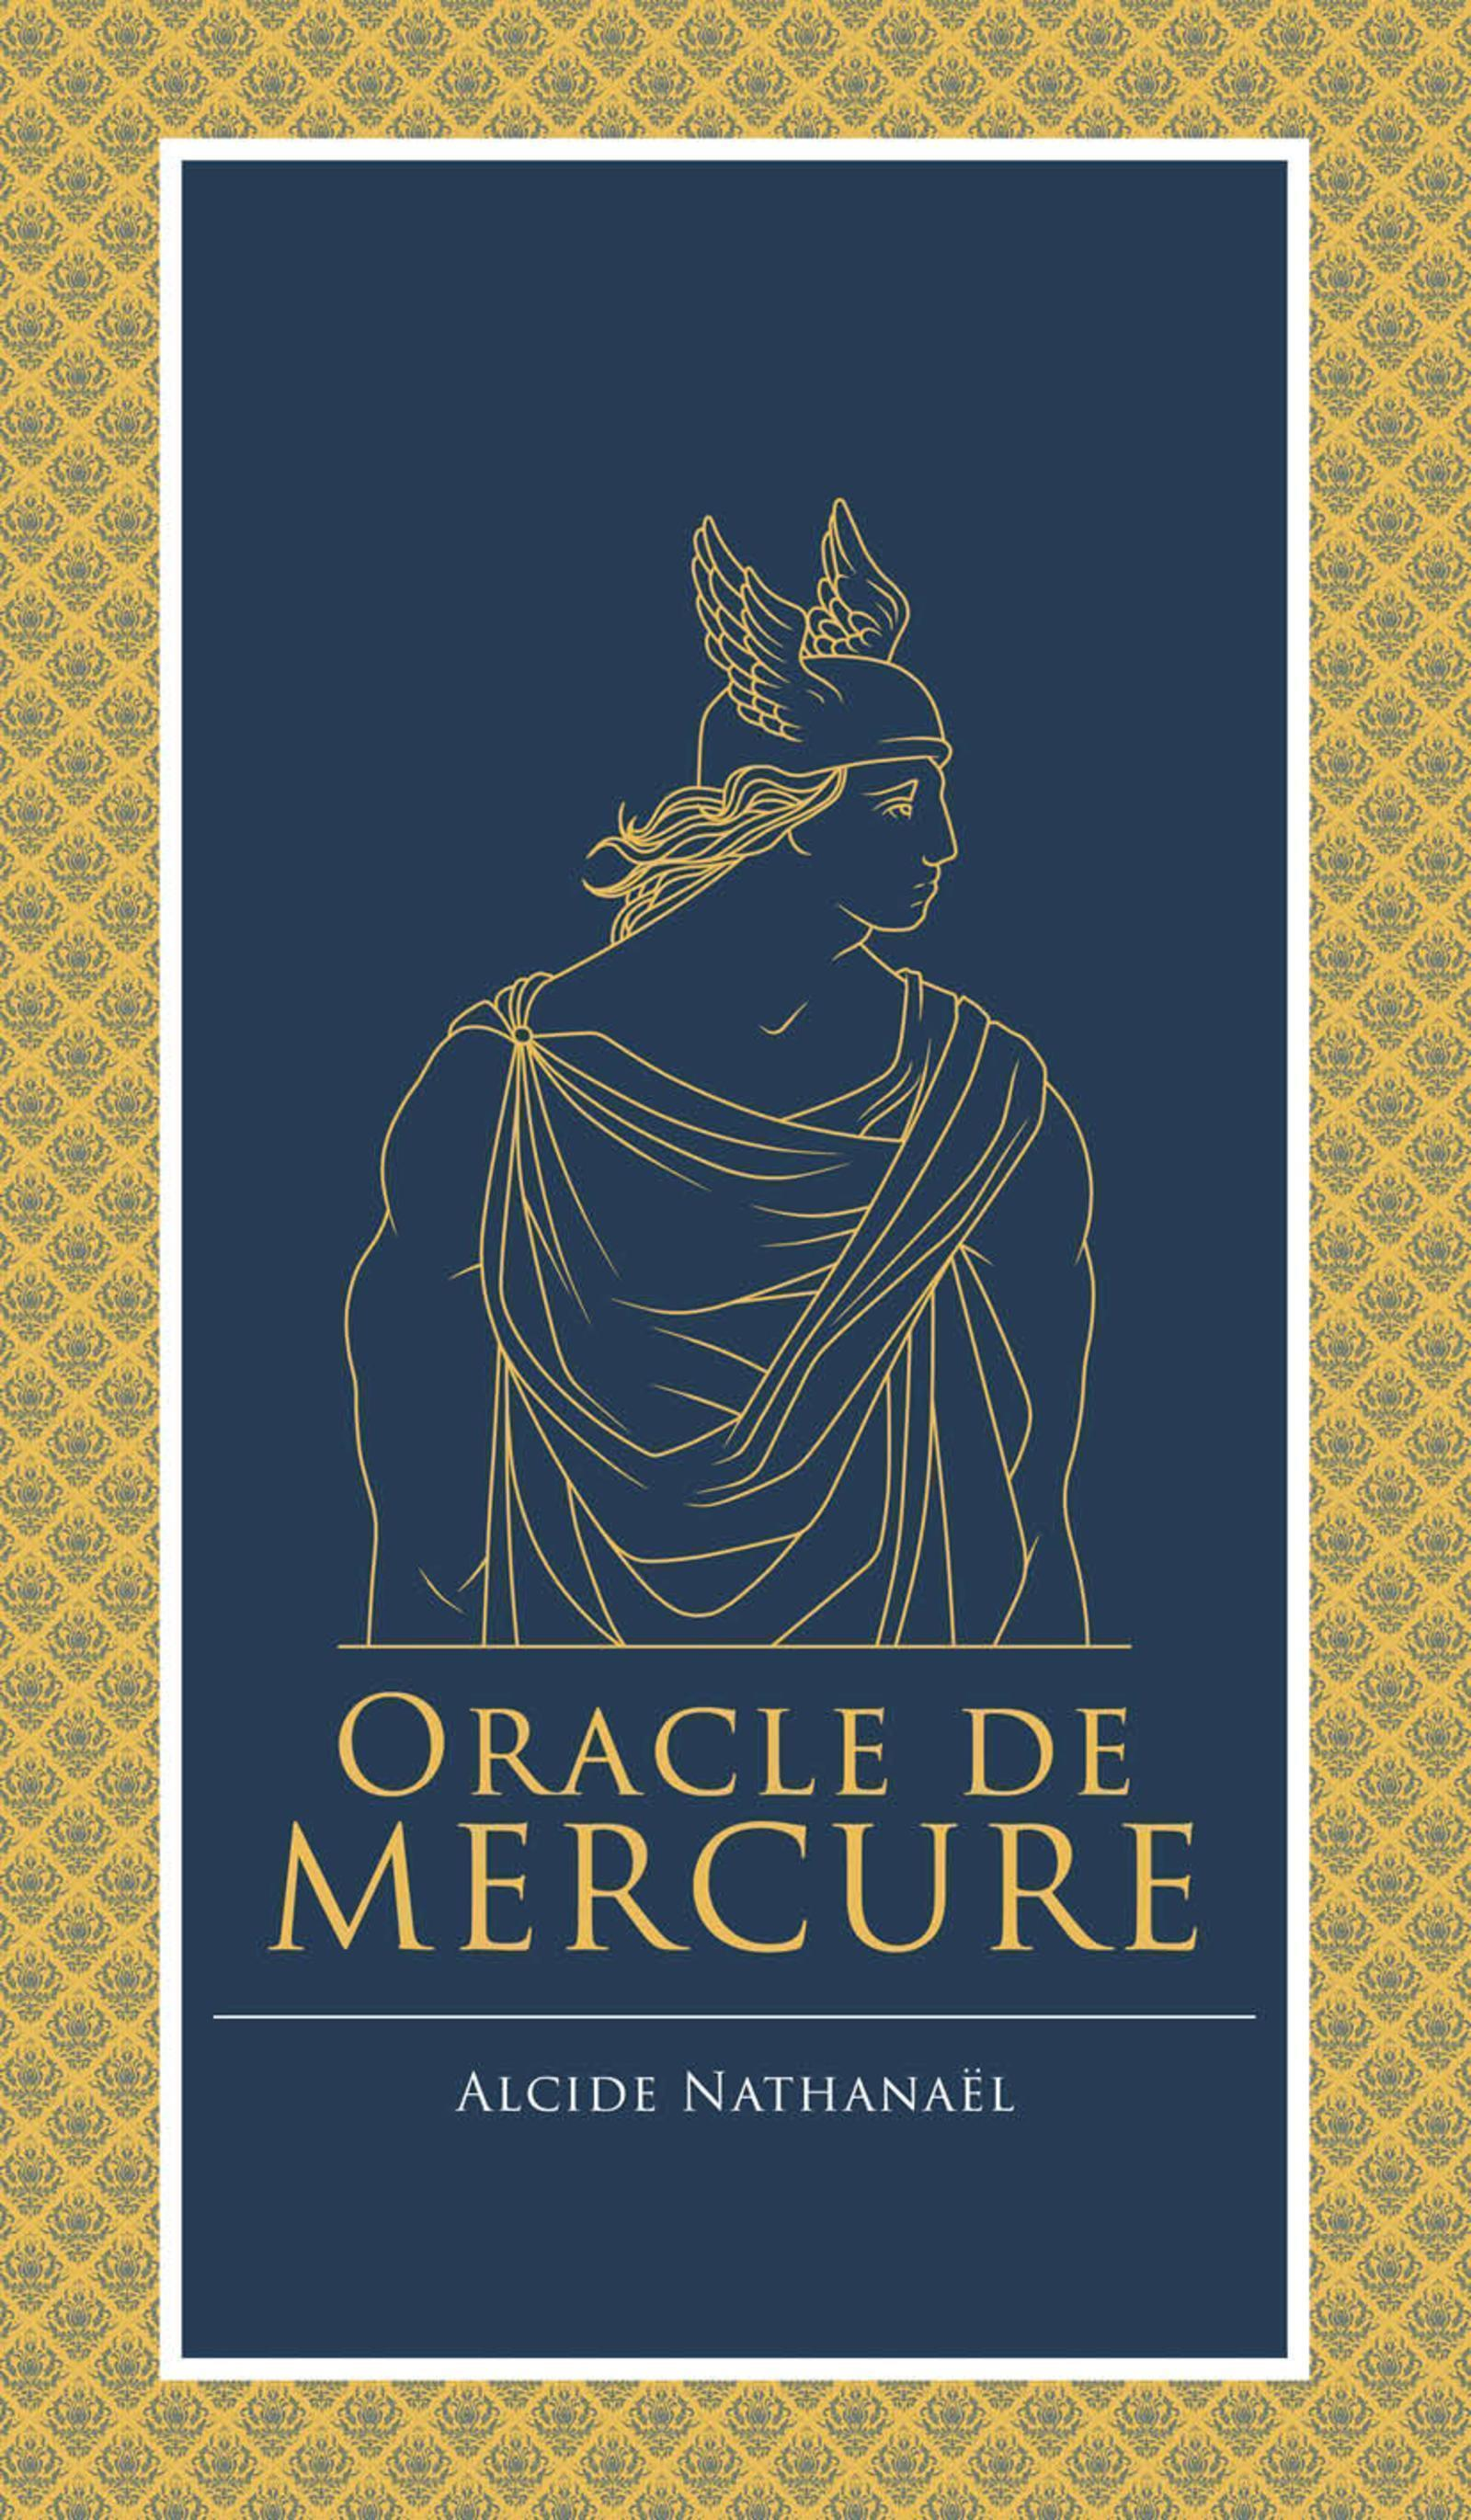 ORACLE DE MERCURE - JEU DE 27 CARTE AVEC NOTICE